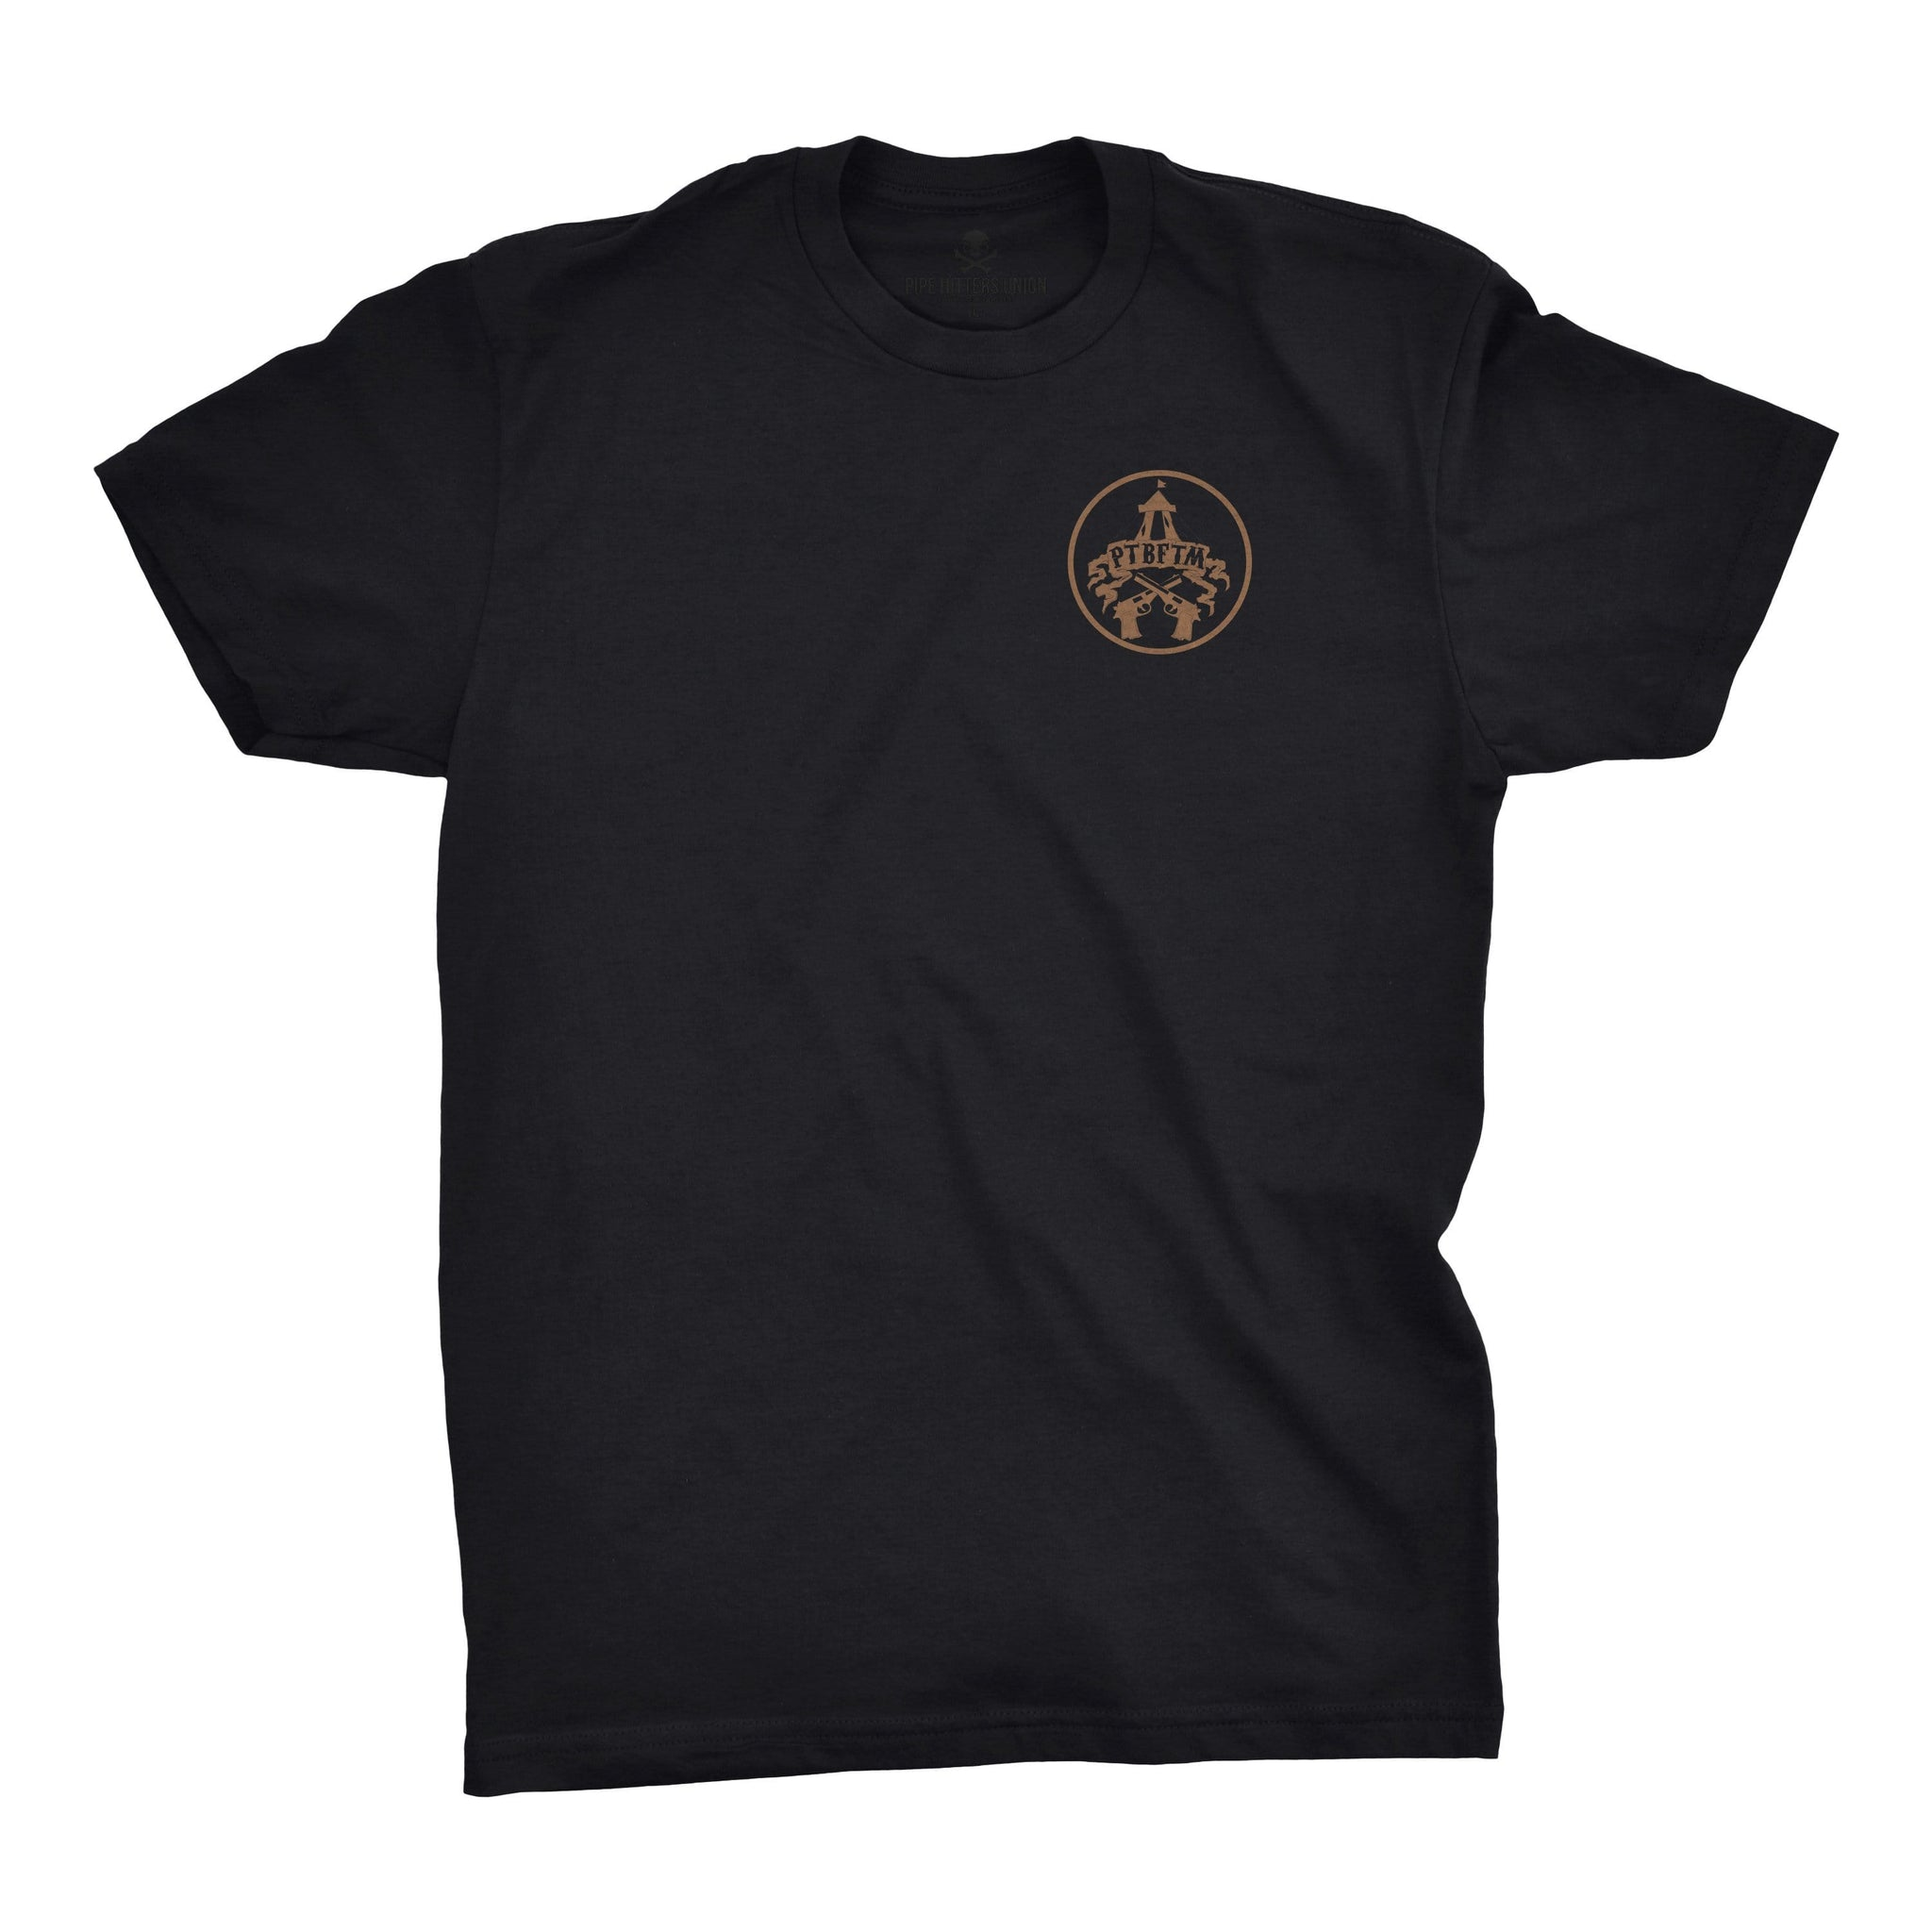 PHUMC Pistol Circus Chapter Tee - Black - T-Shirts - Pipe Hitters Union